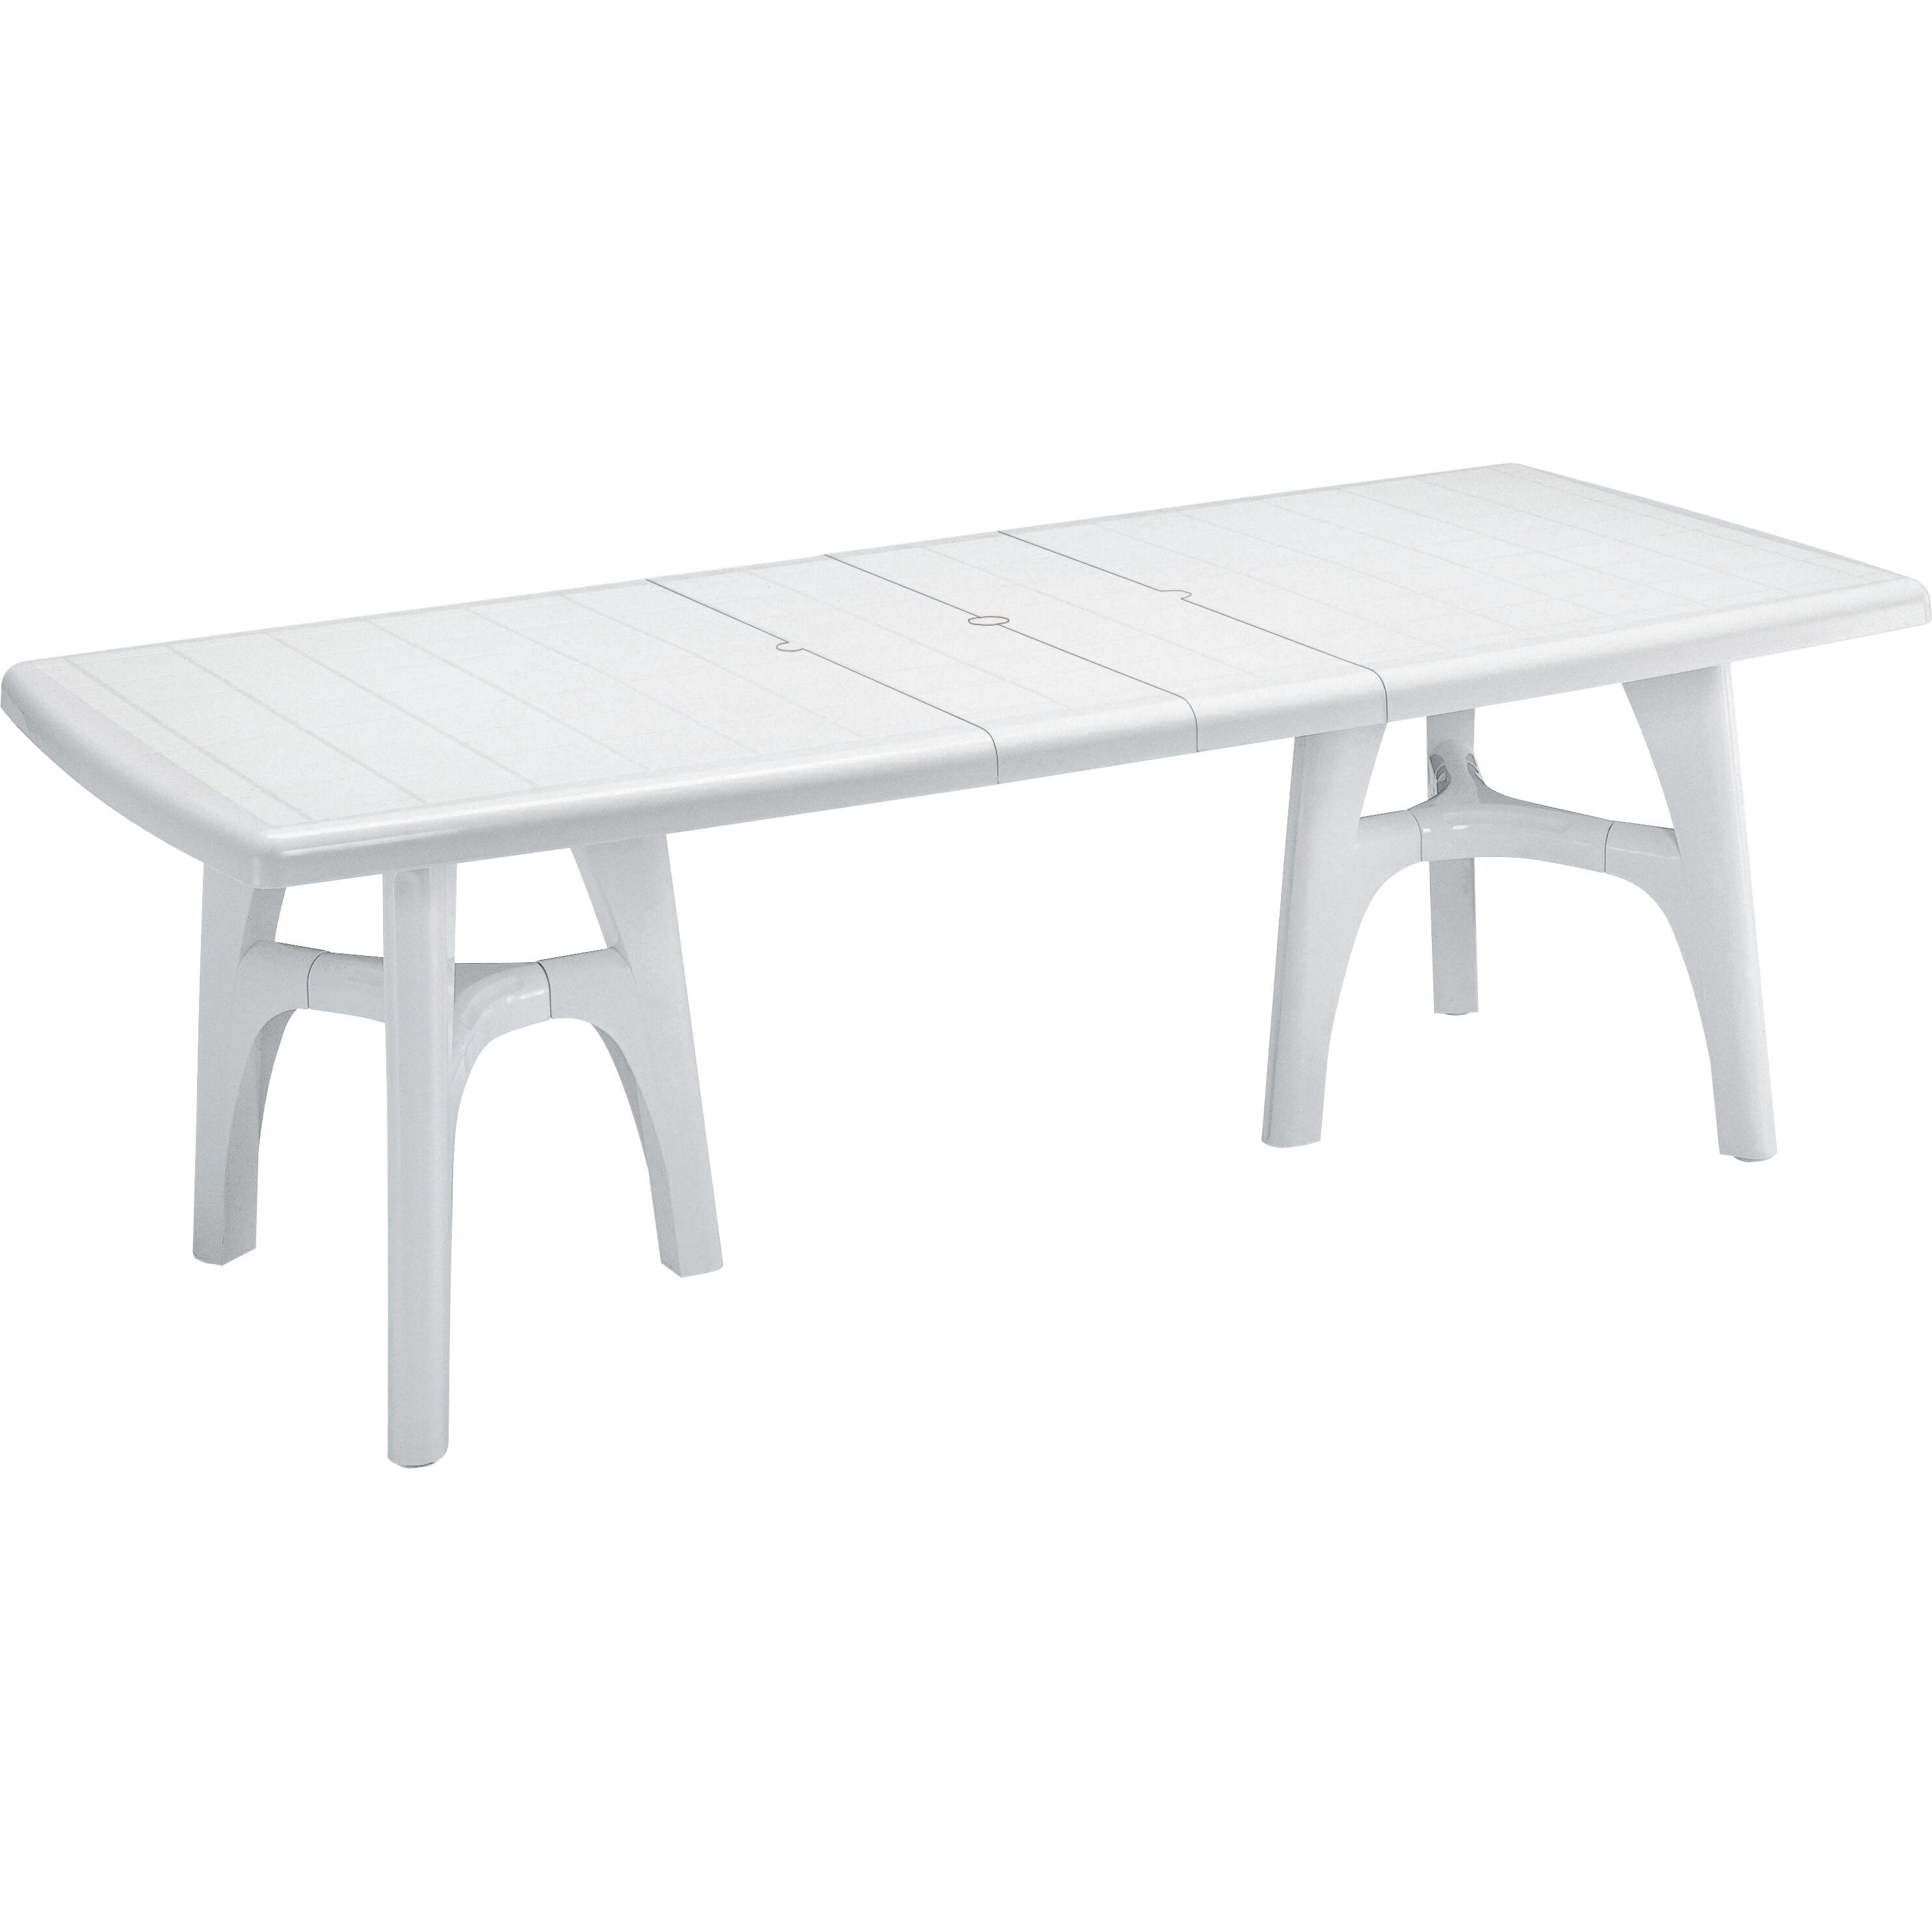 Extending Outdoor Dining Table Scab President Tris Extending Outdoor Dining Table Reviews